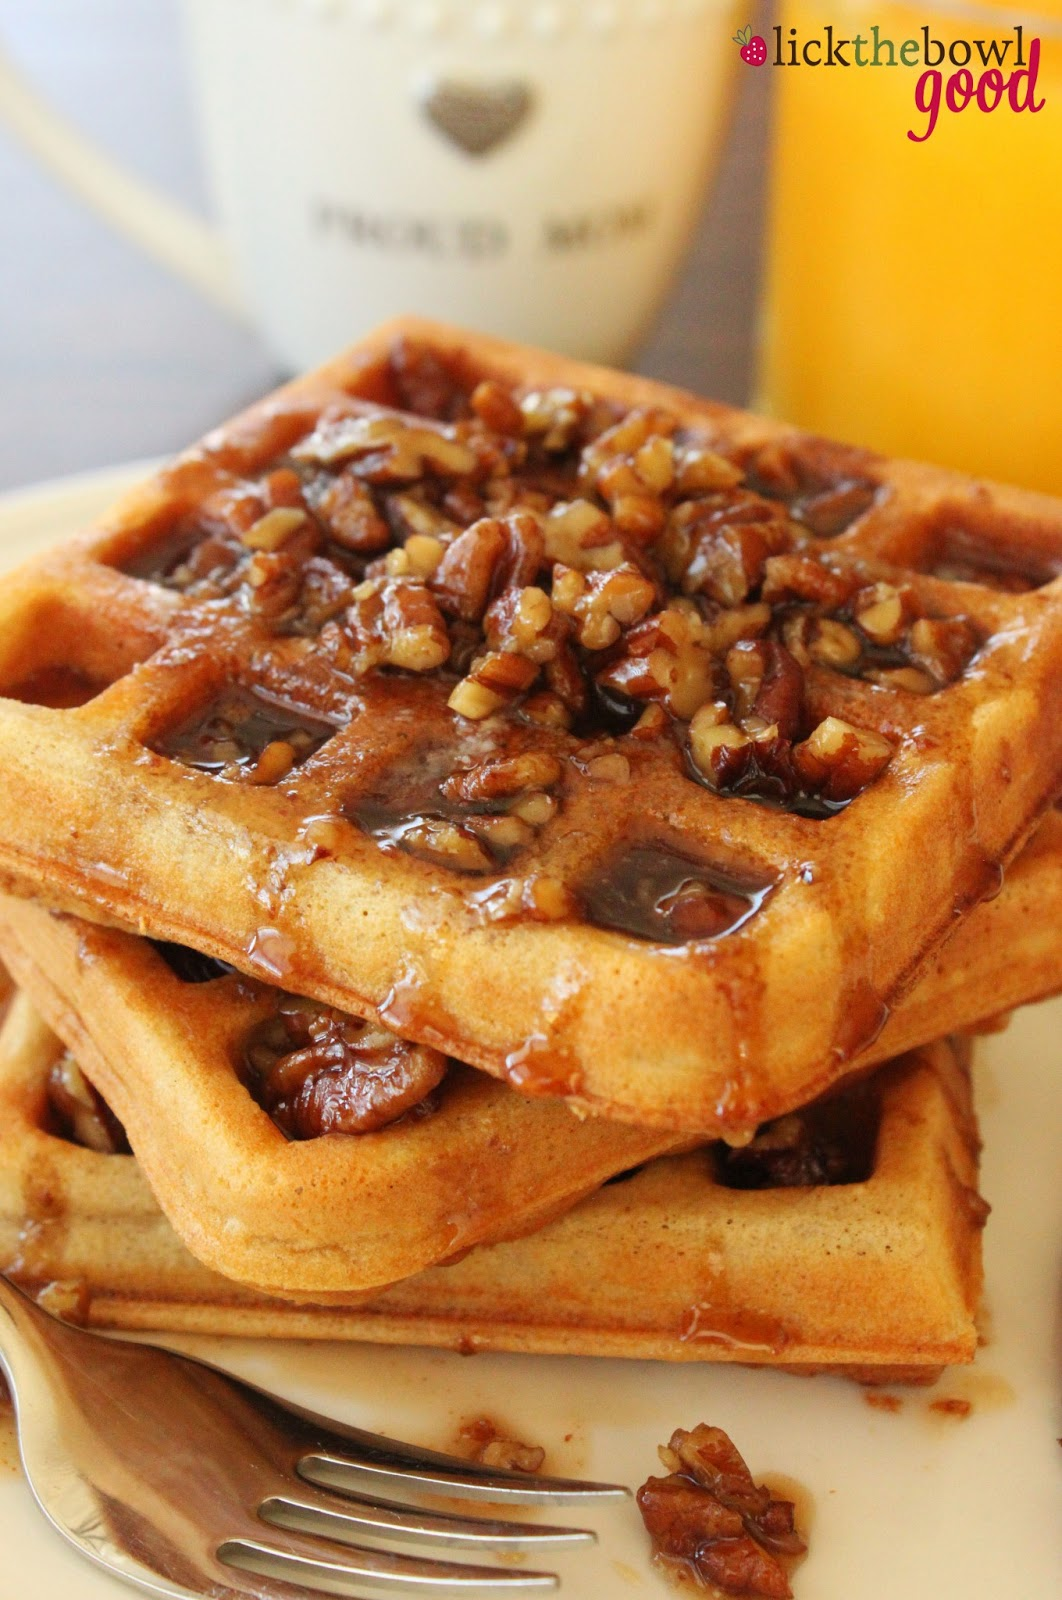 Lick The Bowl Good: Insanely Great Waffles and Easter Weekend